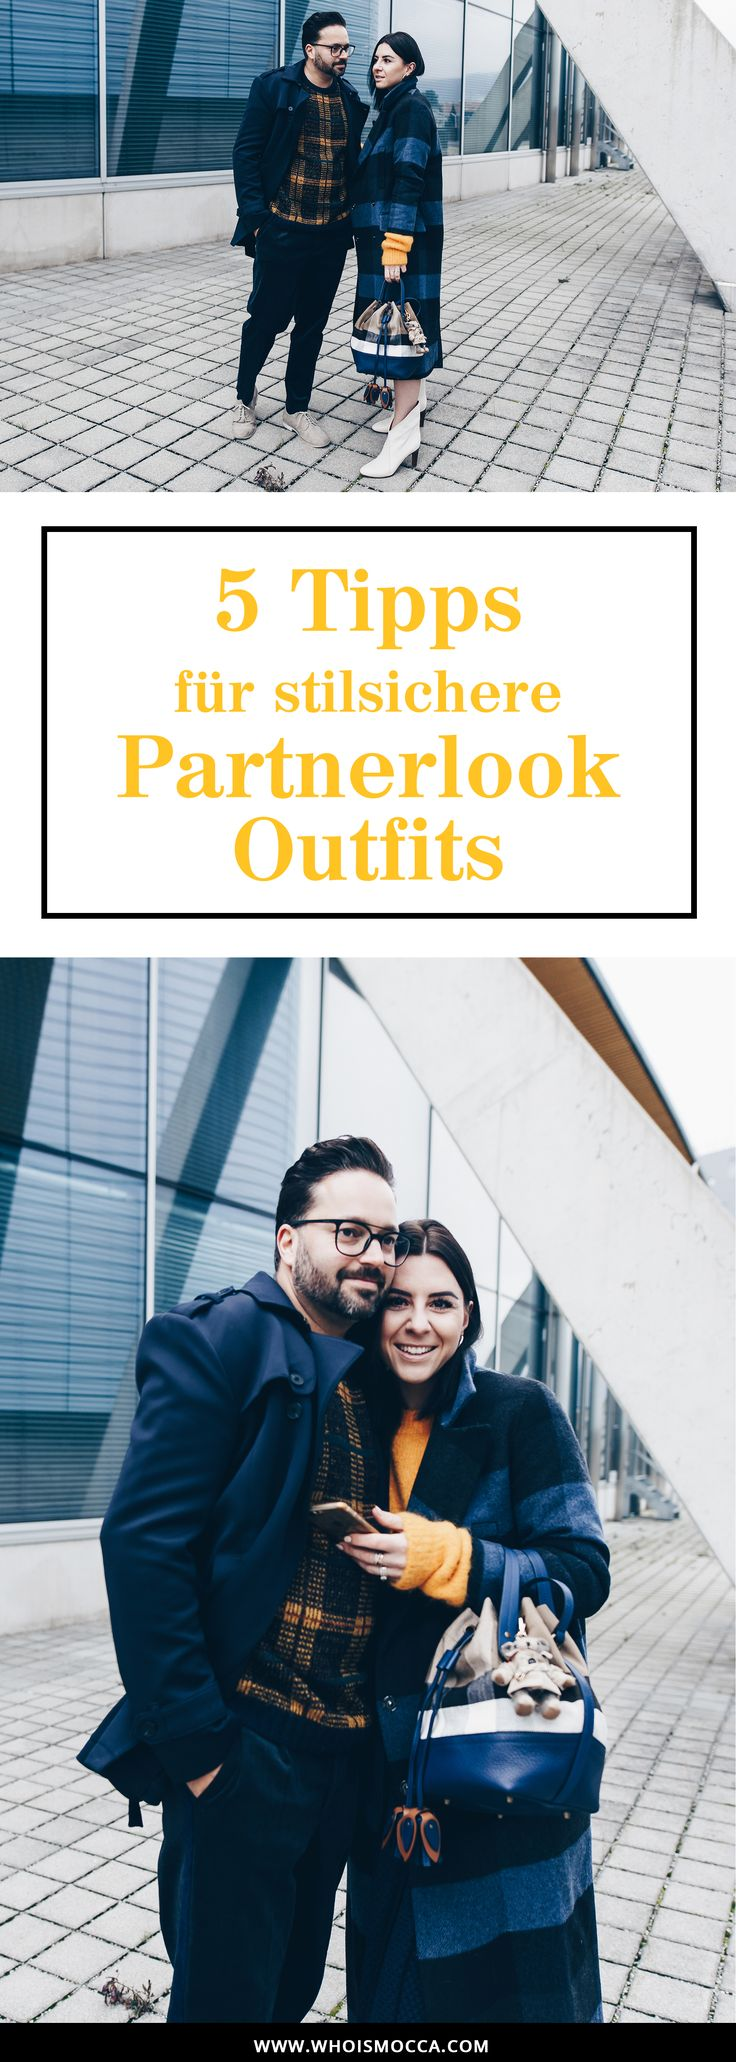 Partnerlook Pärchen Outfits, Partnerlook Styling, Karo Mantel, Winter Trends, Chloe Boots, Männer Outfit, Fashion Blogger, Burberry Beutel, Senfgelber Pullover, Streetstyle, Herbst/Winter Outfits, www.whoismocca.com